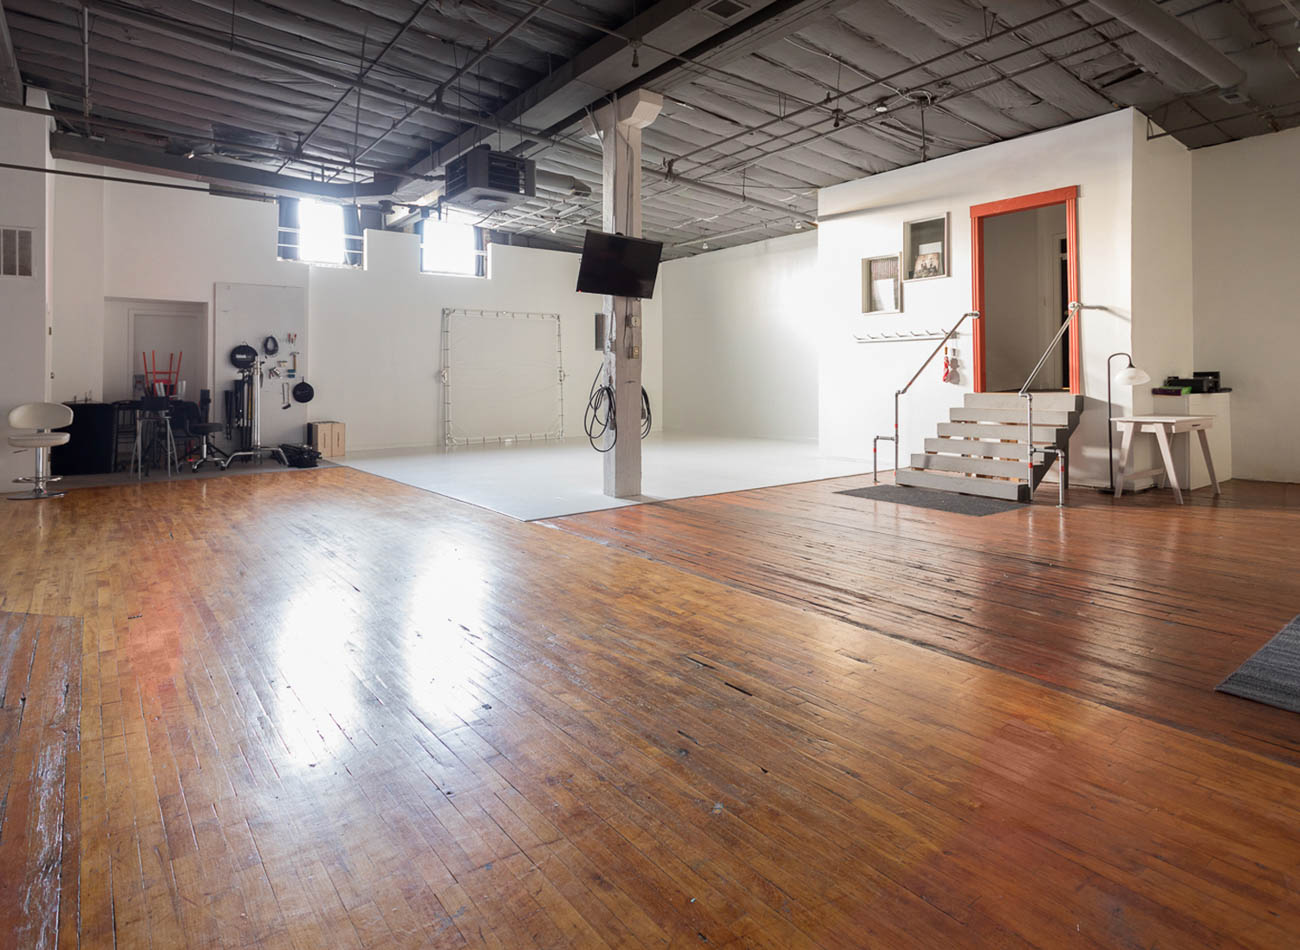 "Marlene Rounds and Jeremy Kramer are talented photographers with a stylish new studio space in the West End. In contrast to their current studio, the new, 3,300-square-foot addition boasts a surplus of windows to allow natural light to help craft their images. According to Marlene, the additional studio space provides ""night and day"" options to both photographers thanks to the added natural light in the new studio. The fresh, modern style of the studio addition is the perfect backdrop for creating a contemporary look for client work. ADDRESS: 2141 Central Parkway (45214) / Image: Marlene Rounds // Published: 7.6.19"